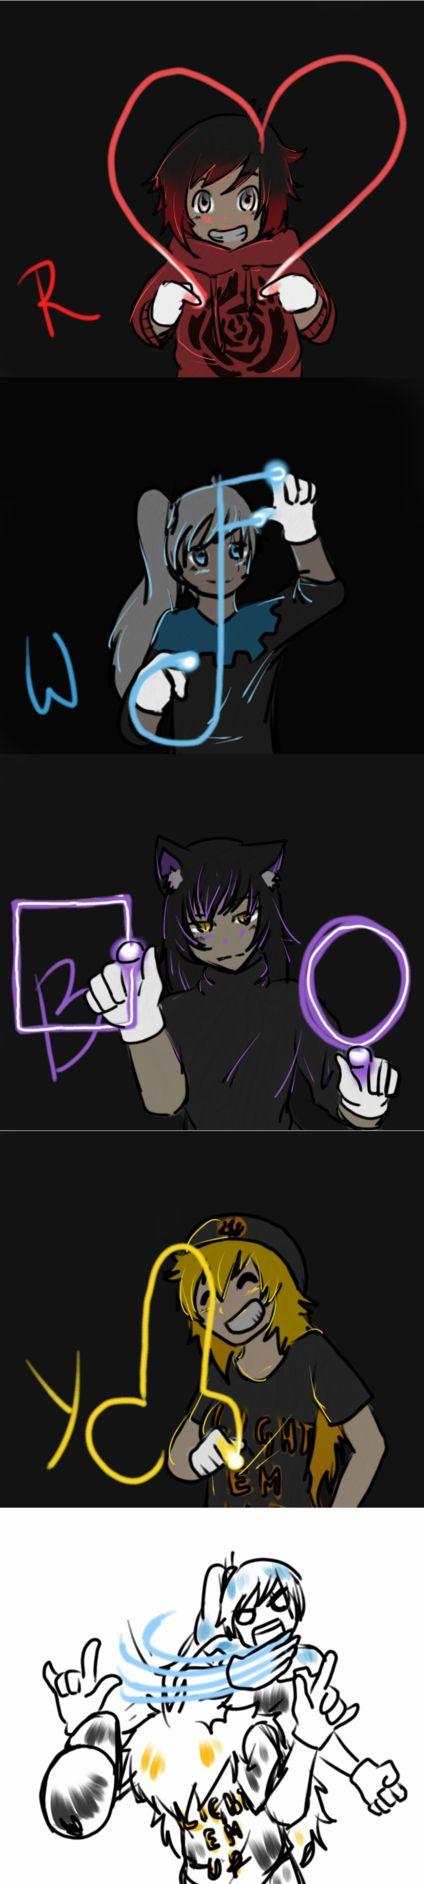 Of course Yang would draw (?) that. On second thought, who wouldn't draw a neon dick.